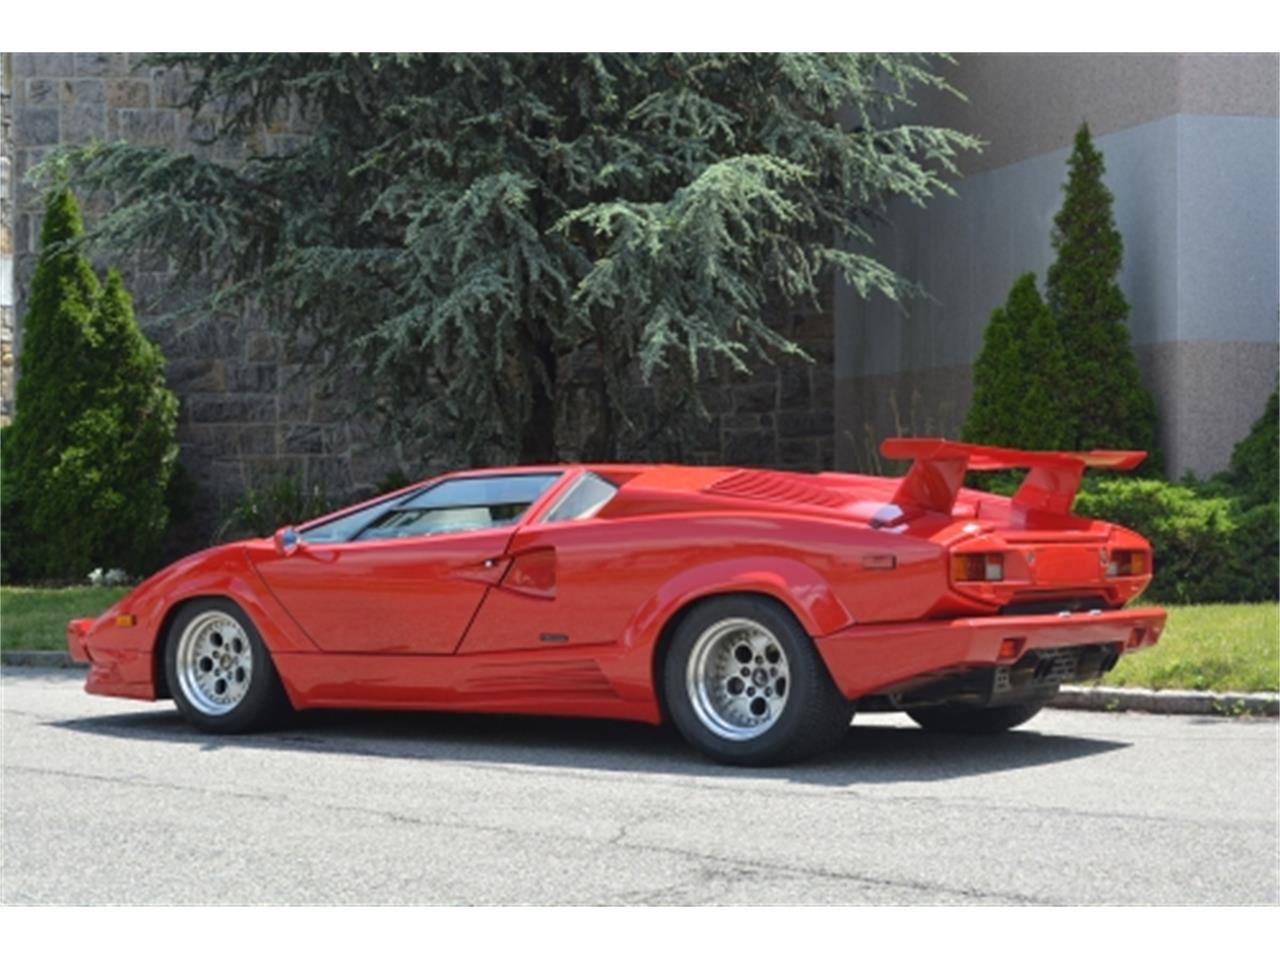 Large Picture of '89 Countach - $249,500.00 Offered by Gullwing Motor Cars - EYKT